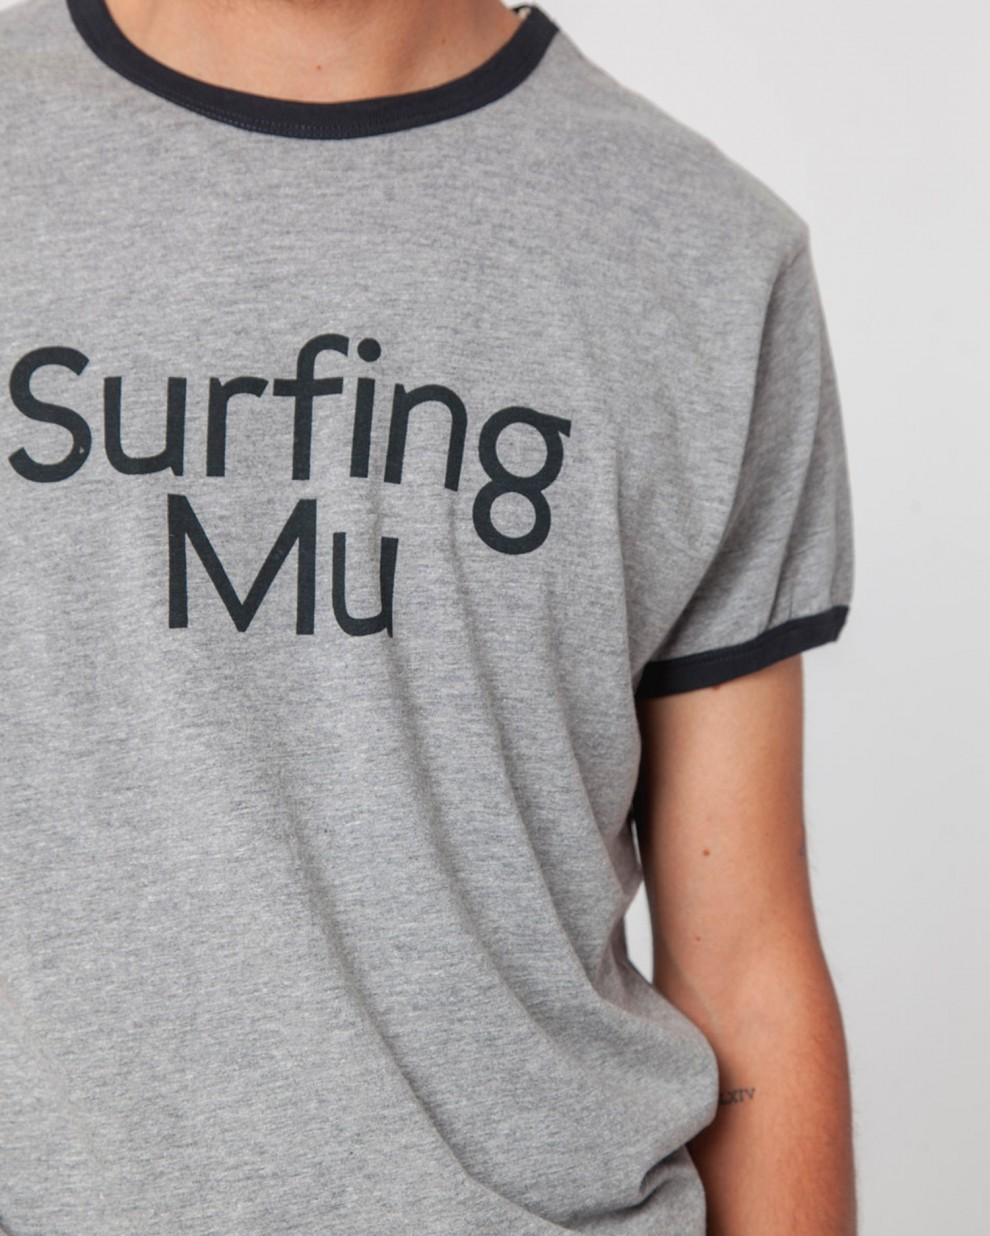 Camiseta Retro Surfing MU